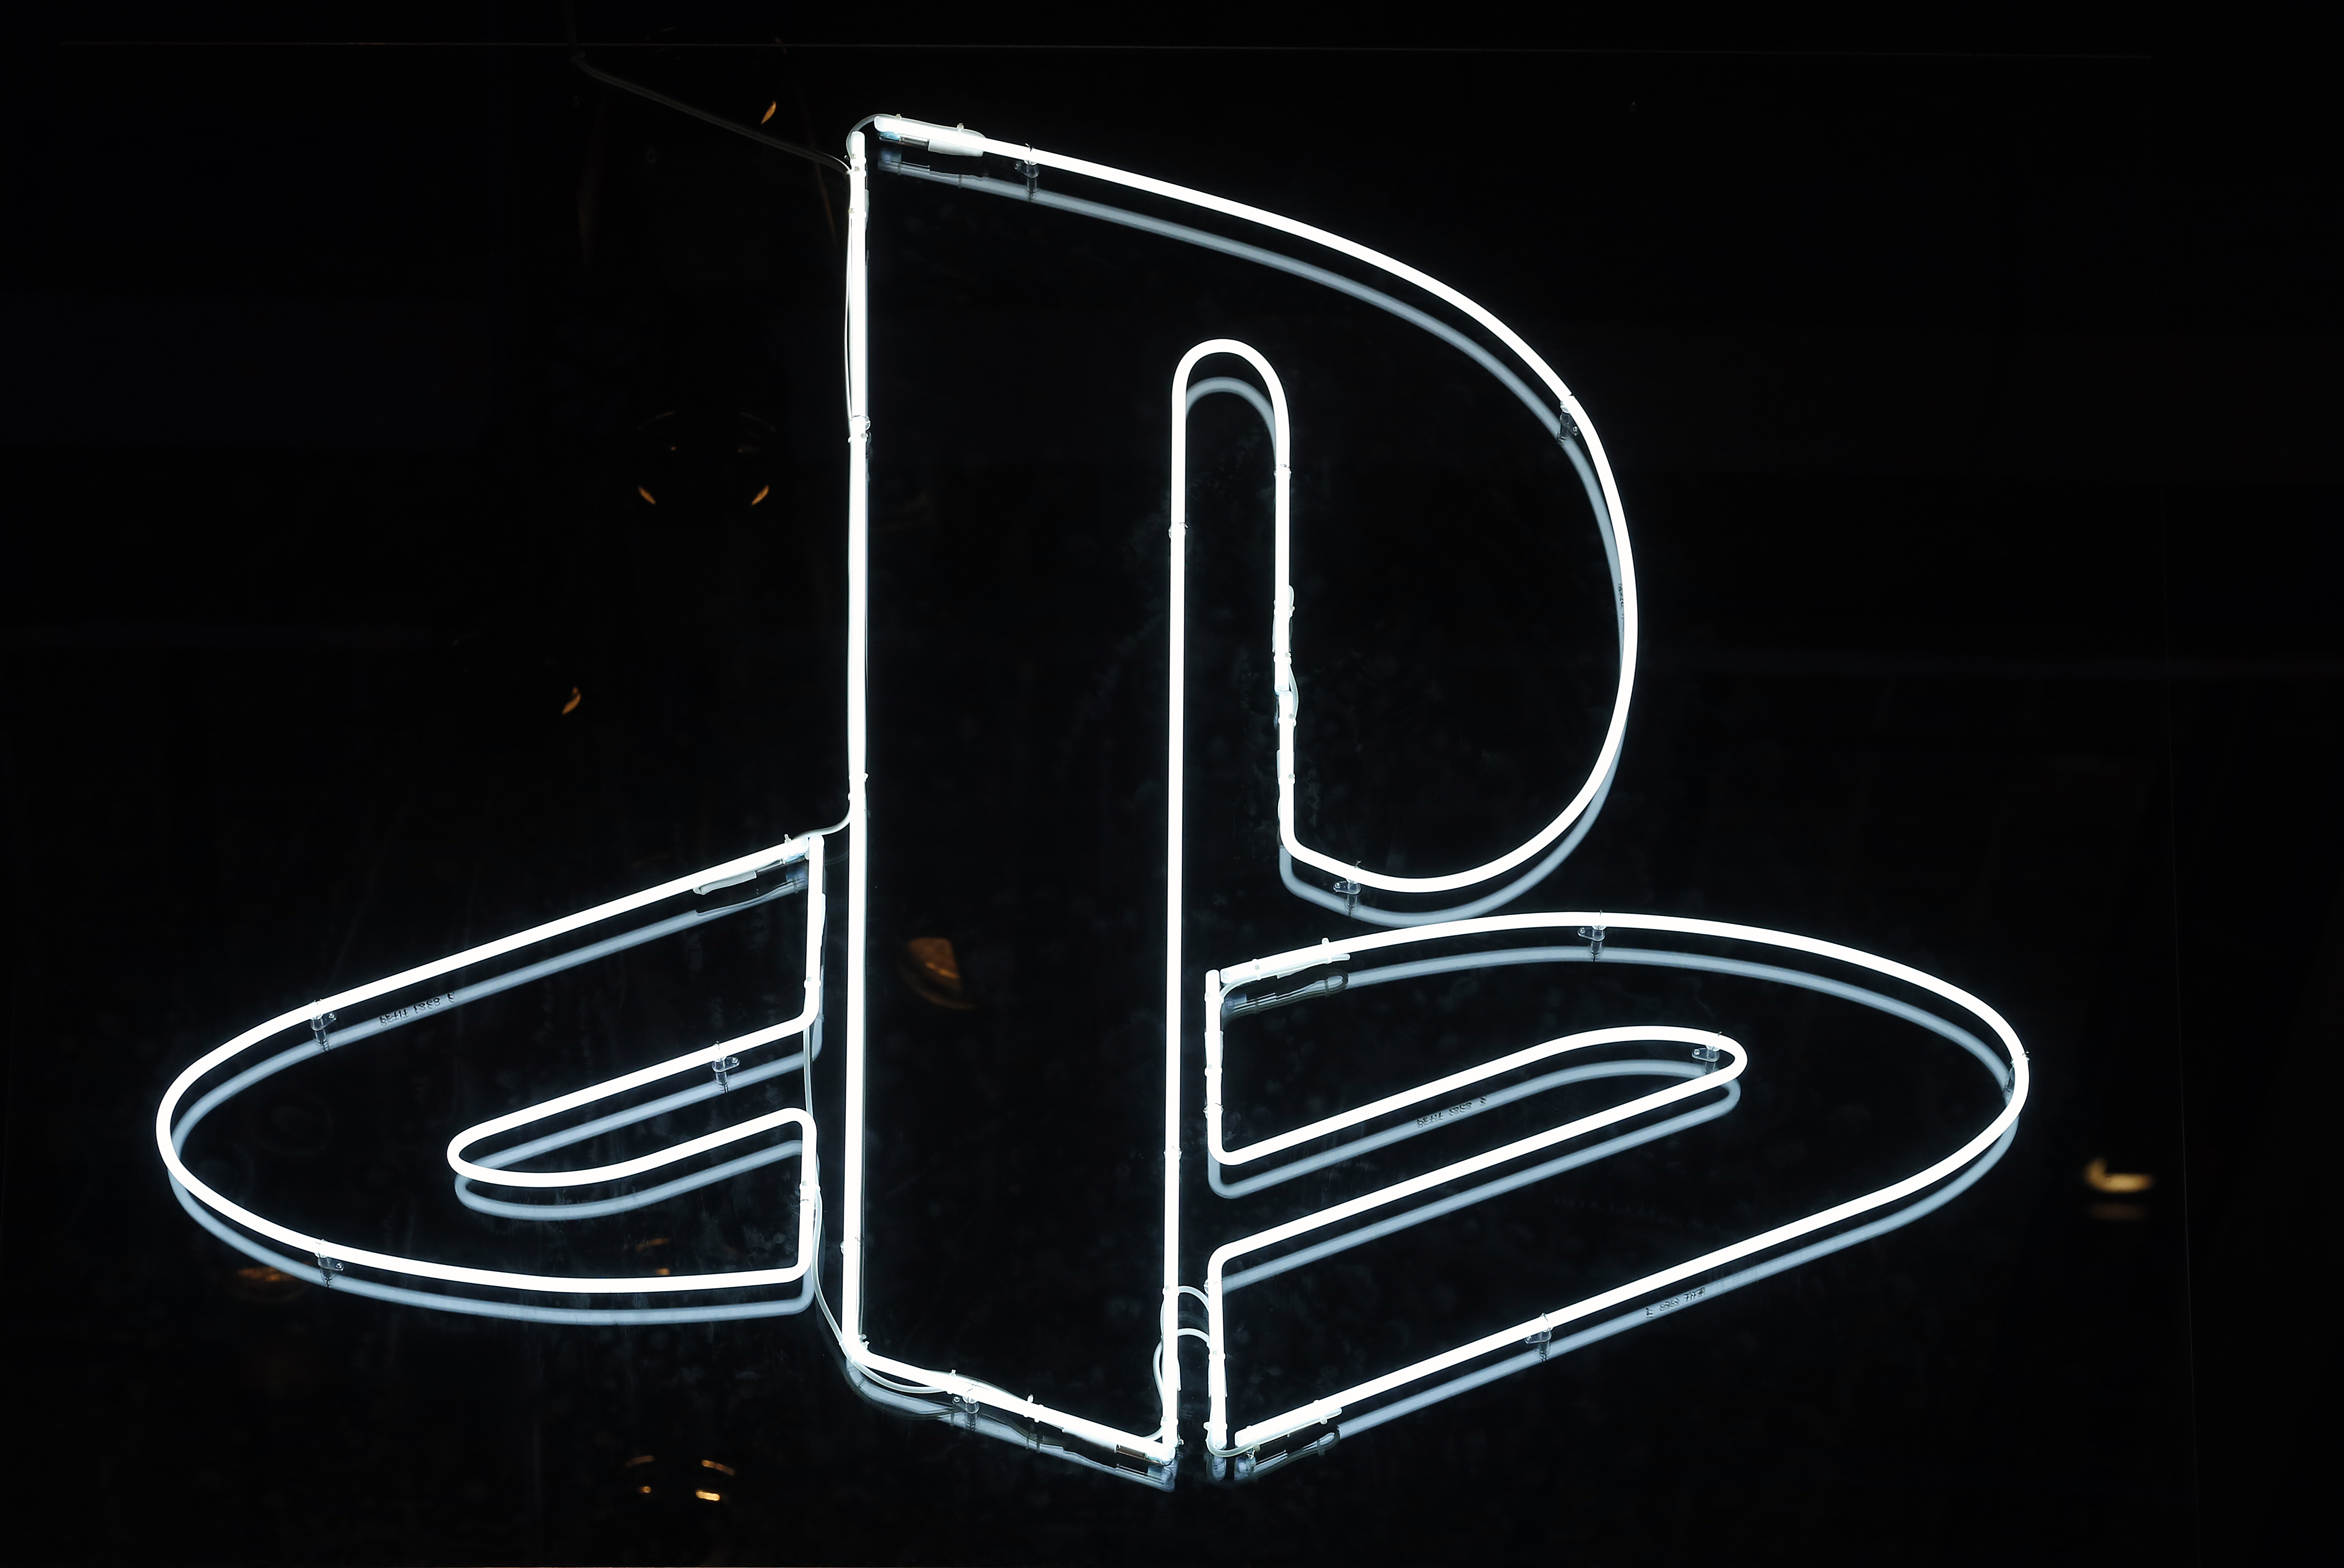 PlayStation 5 will consume less power in effort to combat climate change